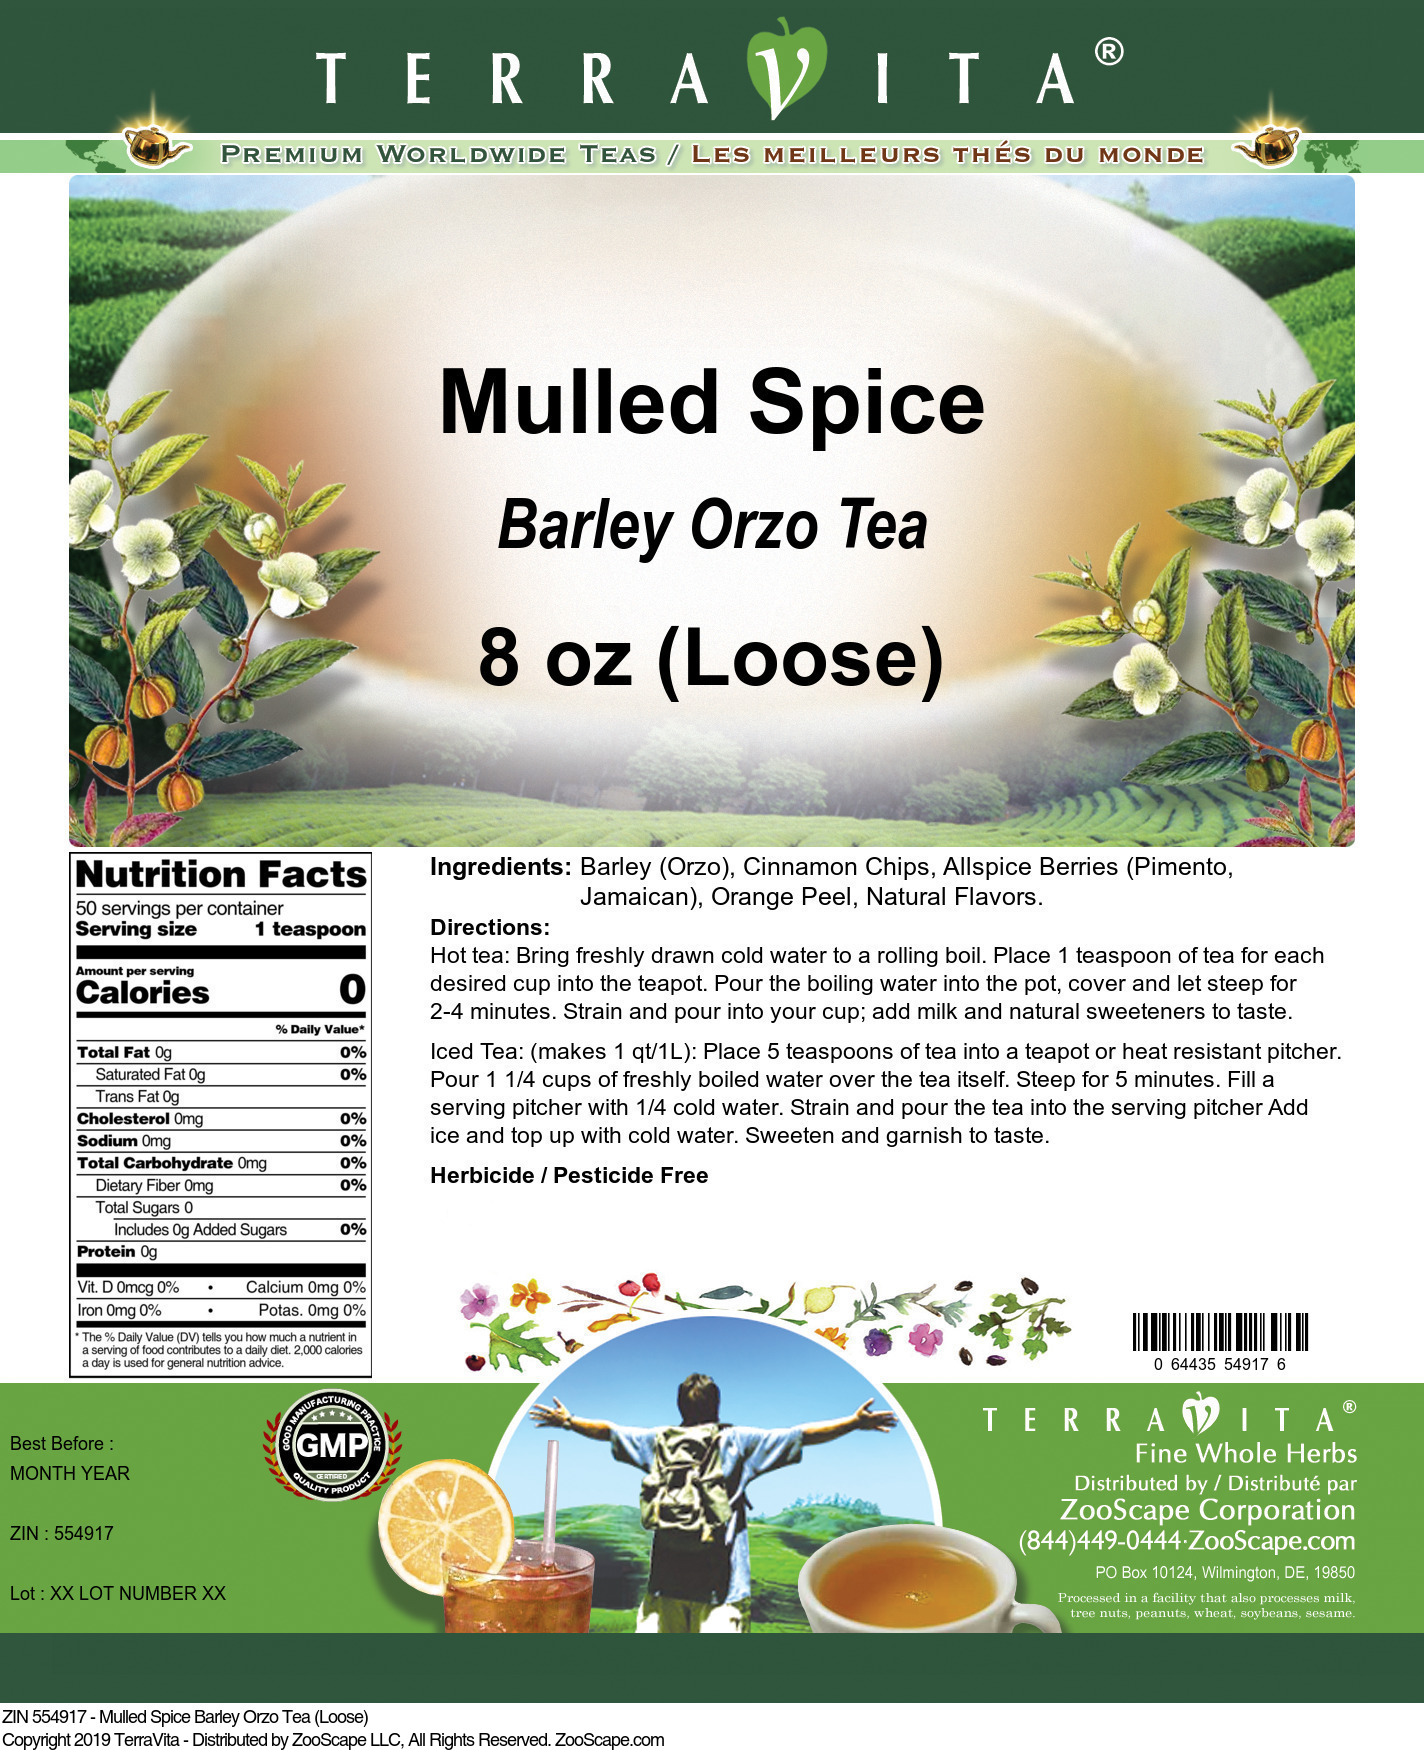 Mulled Spice Barley Orzo